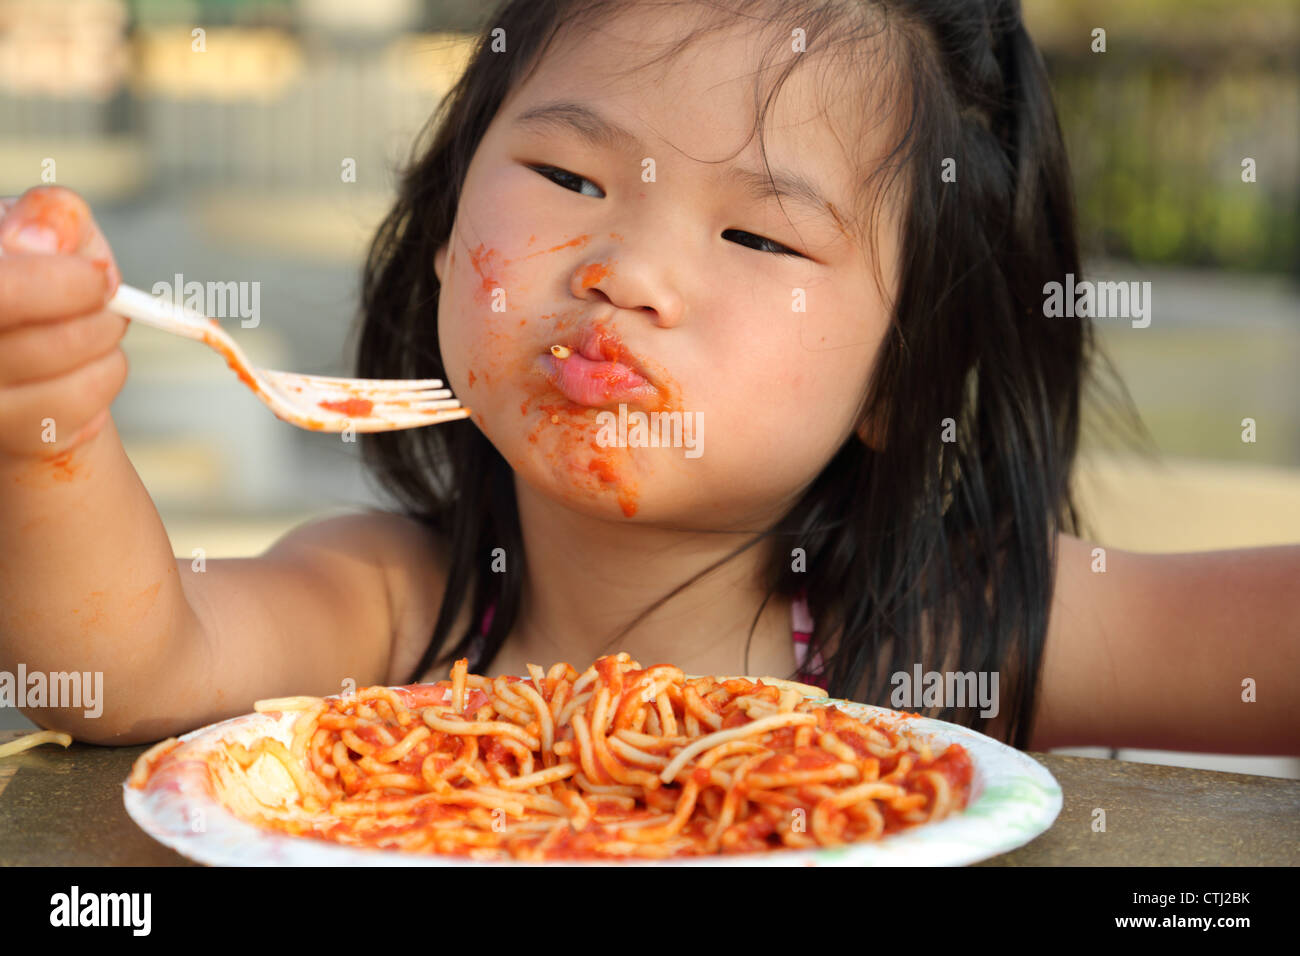 Young girl eating spaghetti and making mess - Stock Image